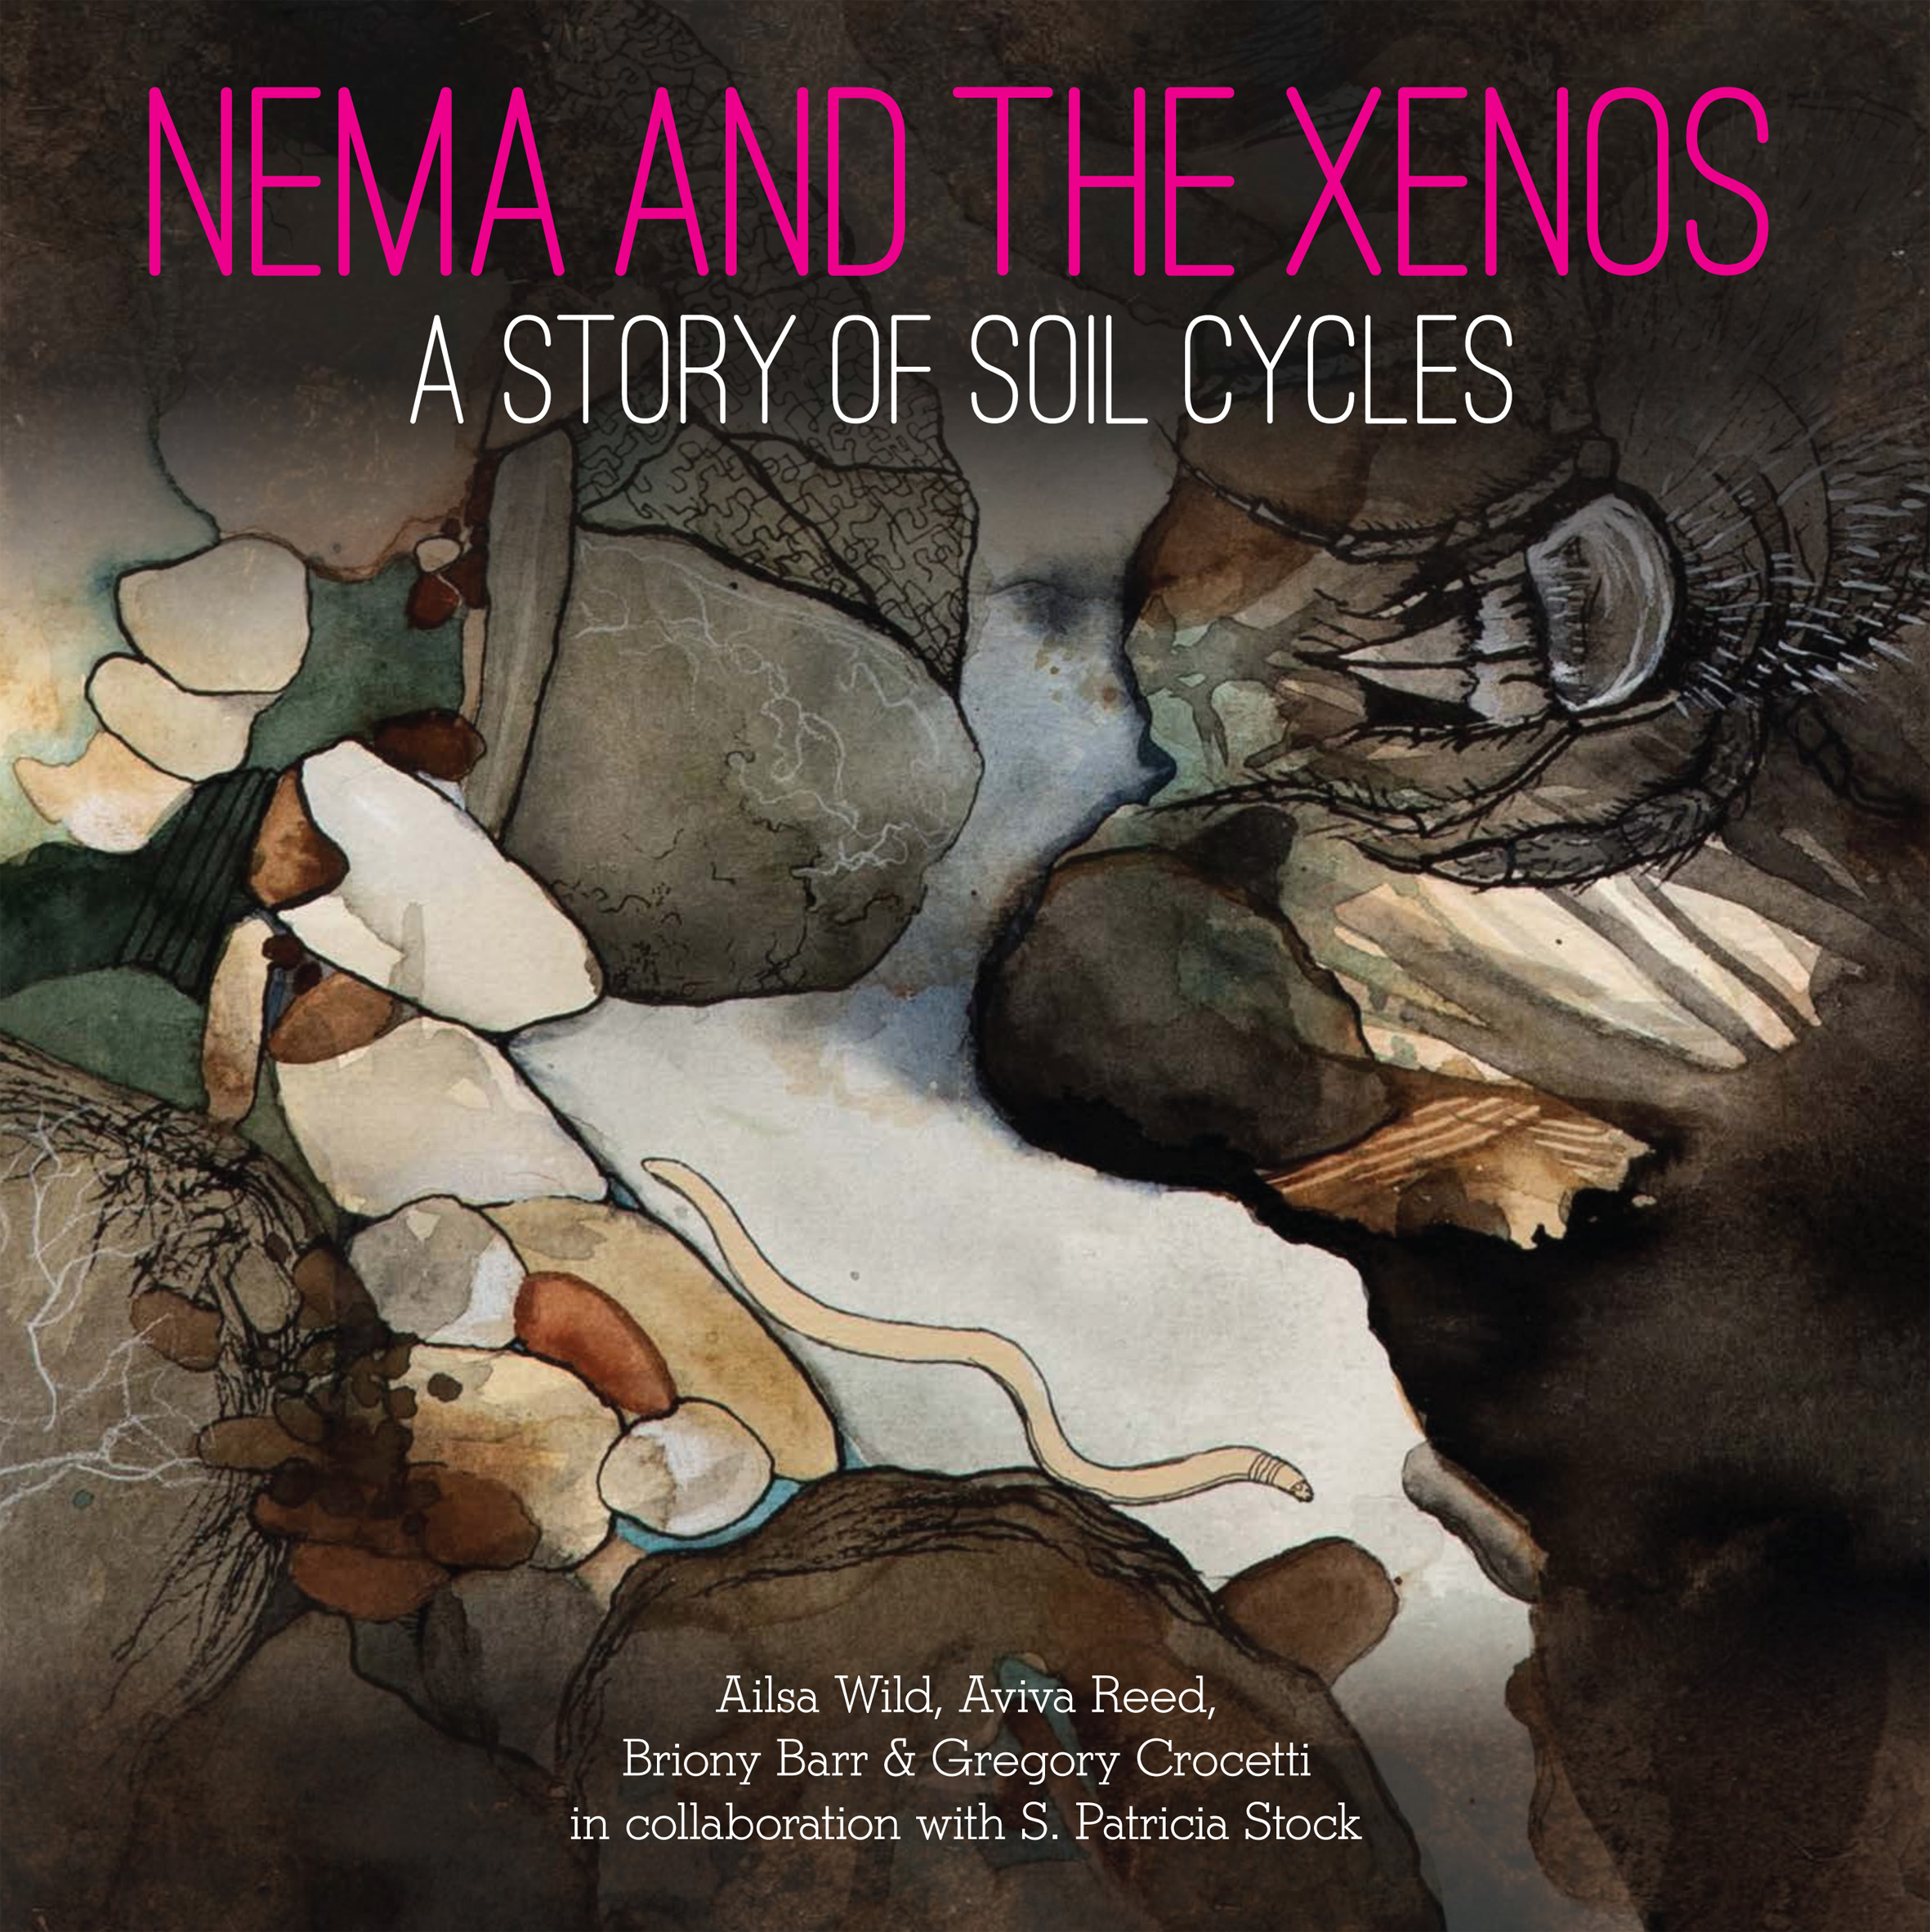 Nema and the Xenos: A Story of Soil Cycles